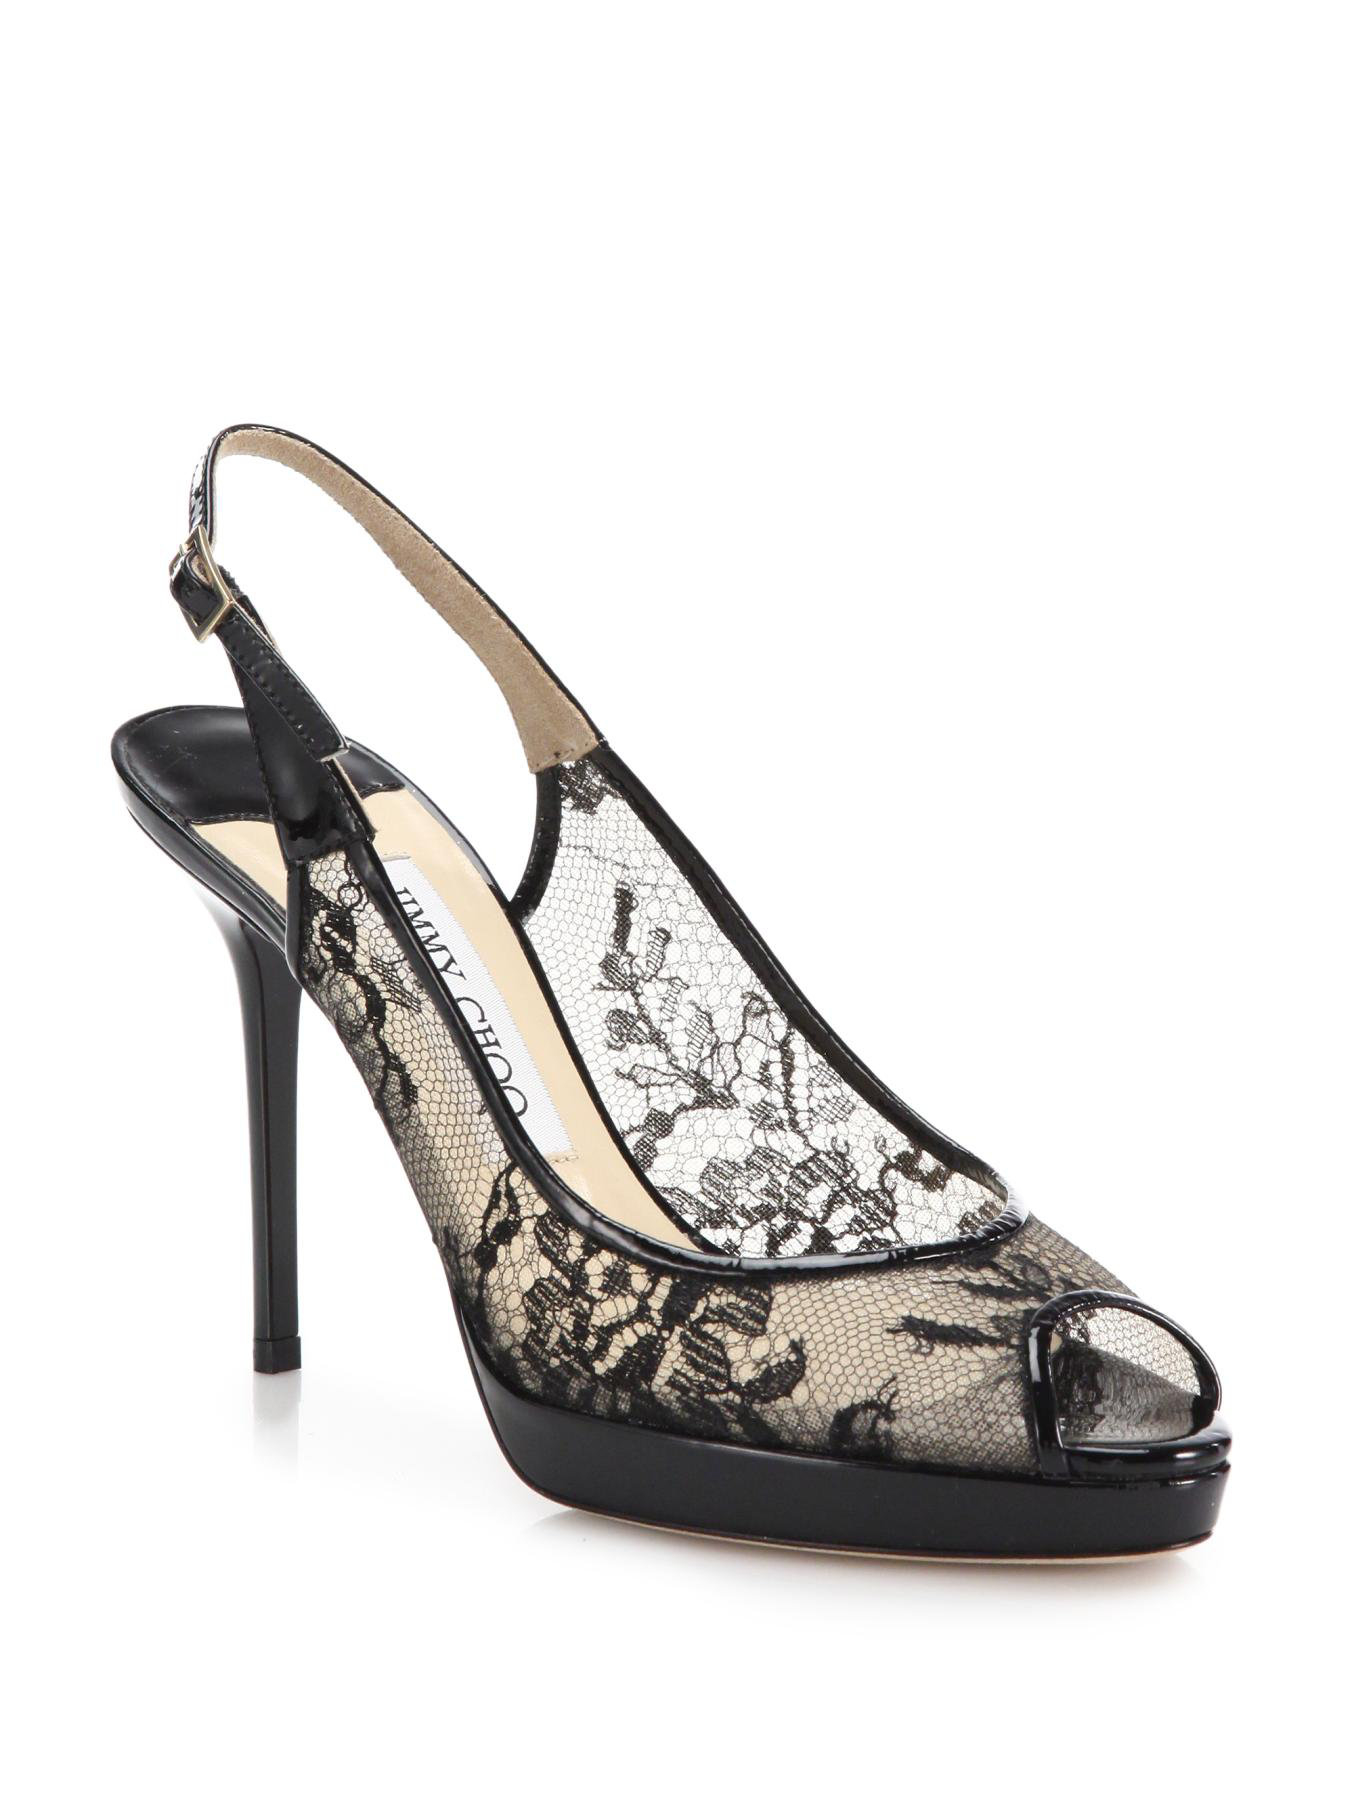 9240cfcb8ecb Jimmy choo Nova Lace Peep-toe Pumps in Black